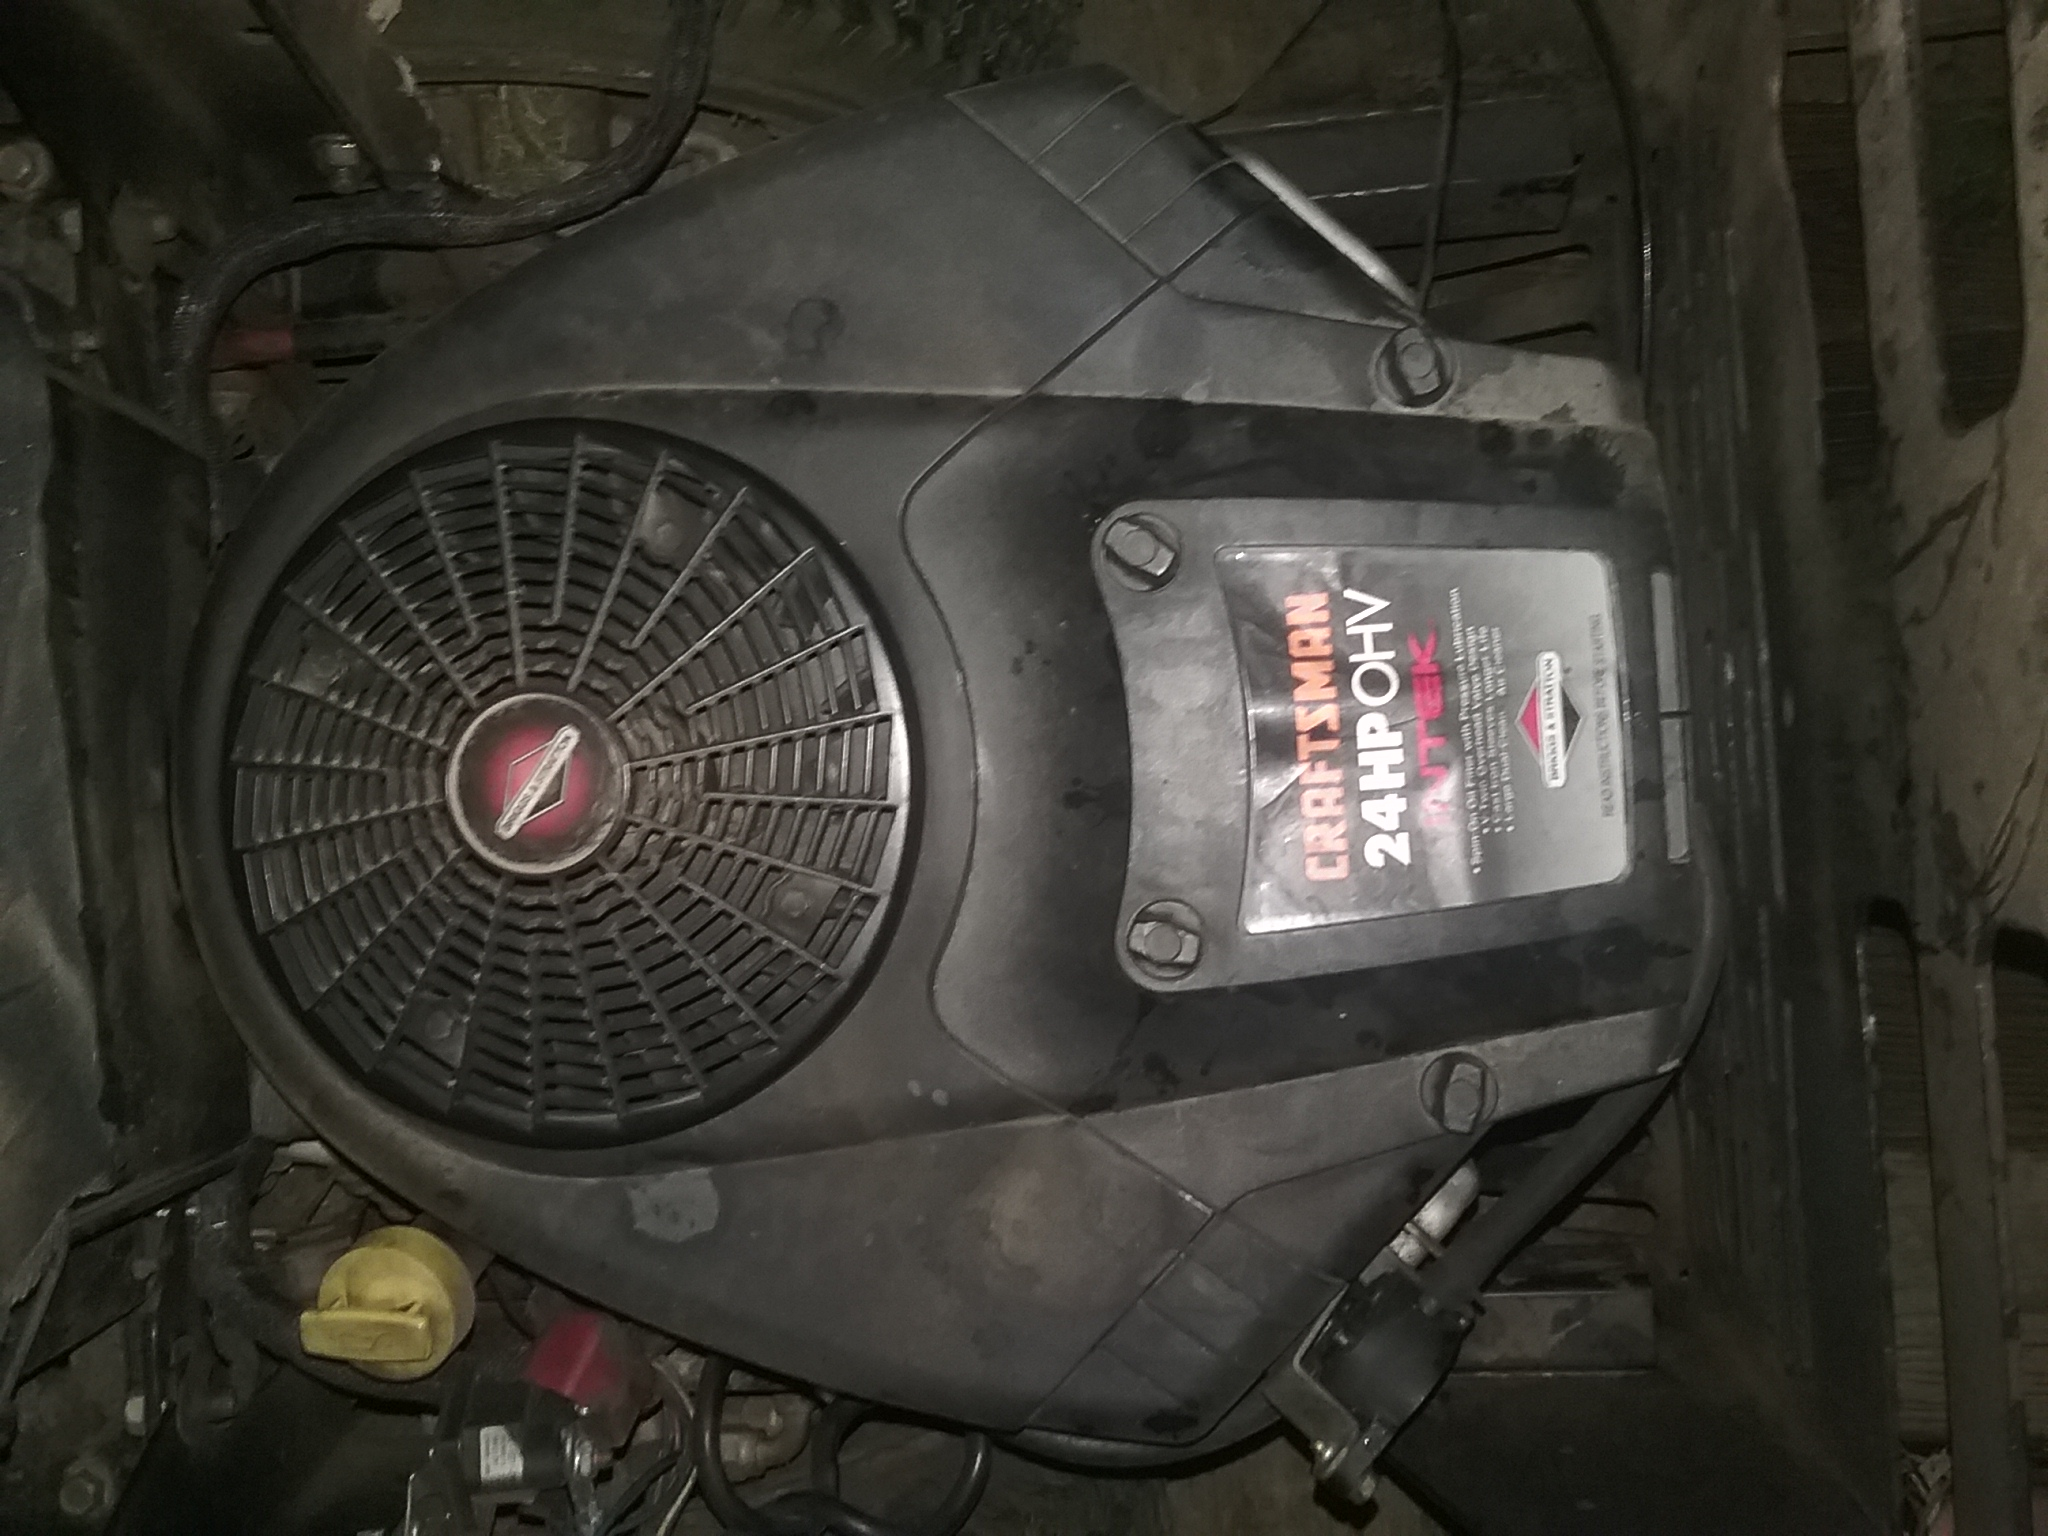 I have a 24hp Briggs stratton ohv engine that is backfiring